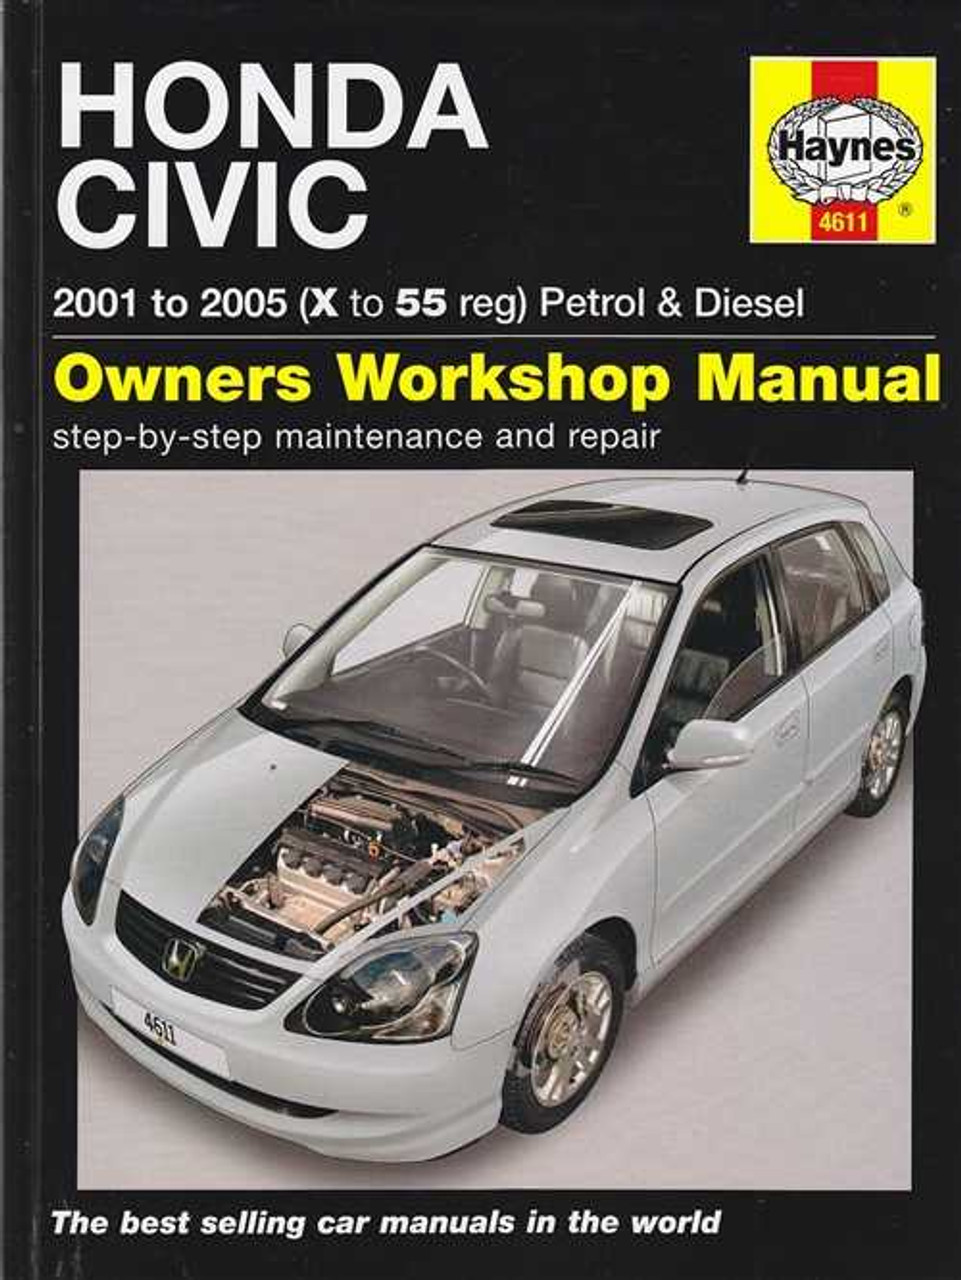 honda civic petrol and diesel 2001 2005 workshop manual rh automotobookshop com au 2006 Honda Civic Torque Specifications Honda Civic User Manual